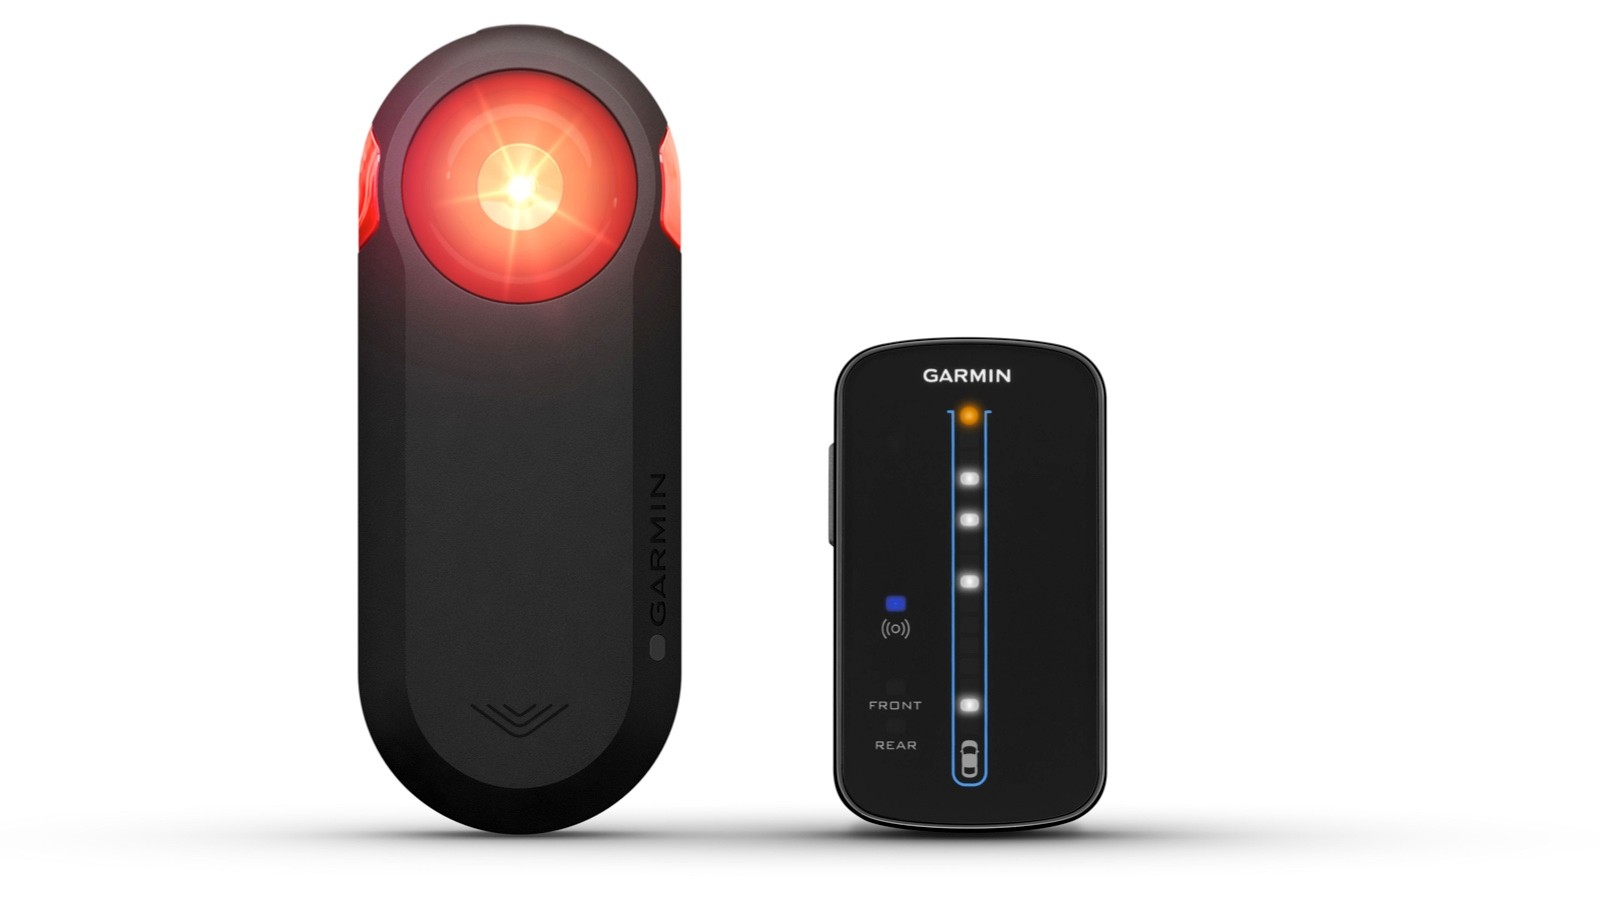 The Garmin Varia RTL510 alerts riders to vehicles approaching from behind, and doubles as a tail light